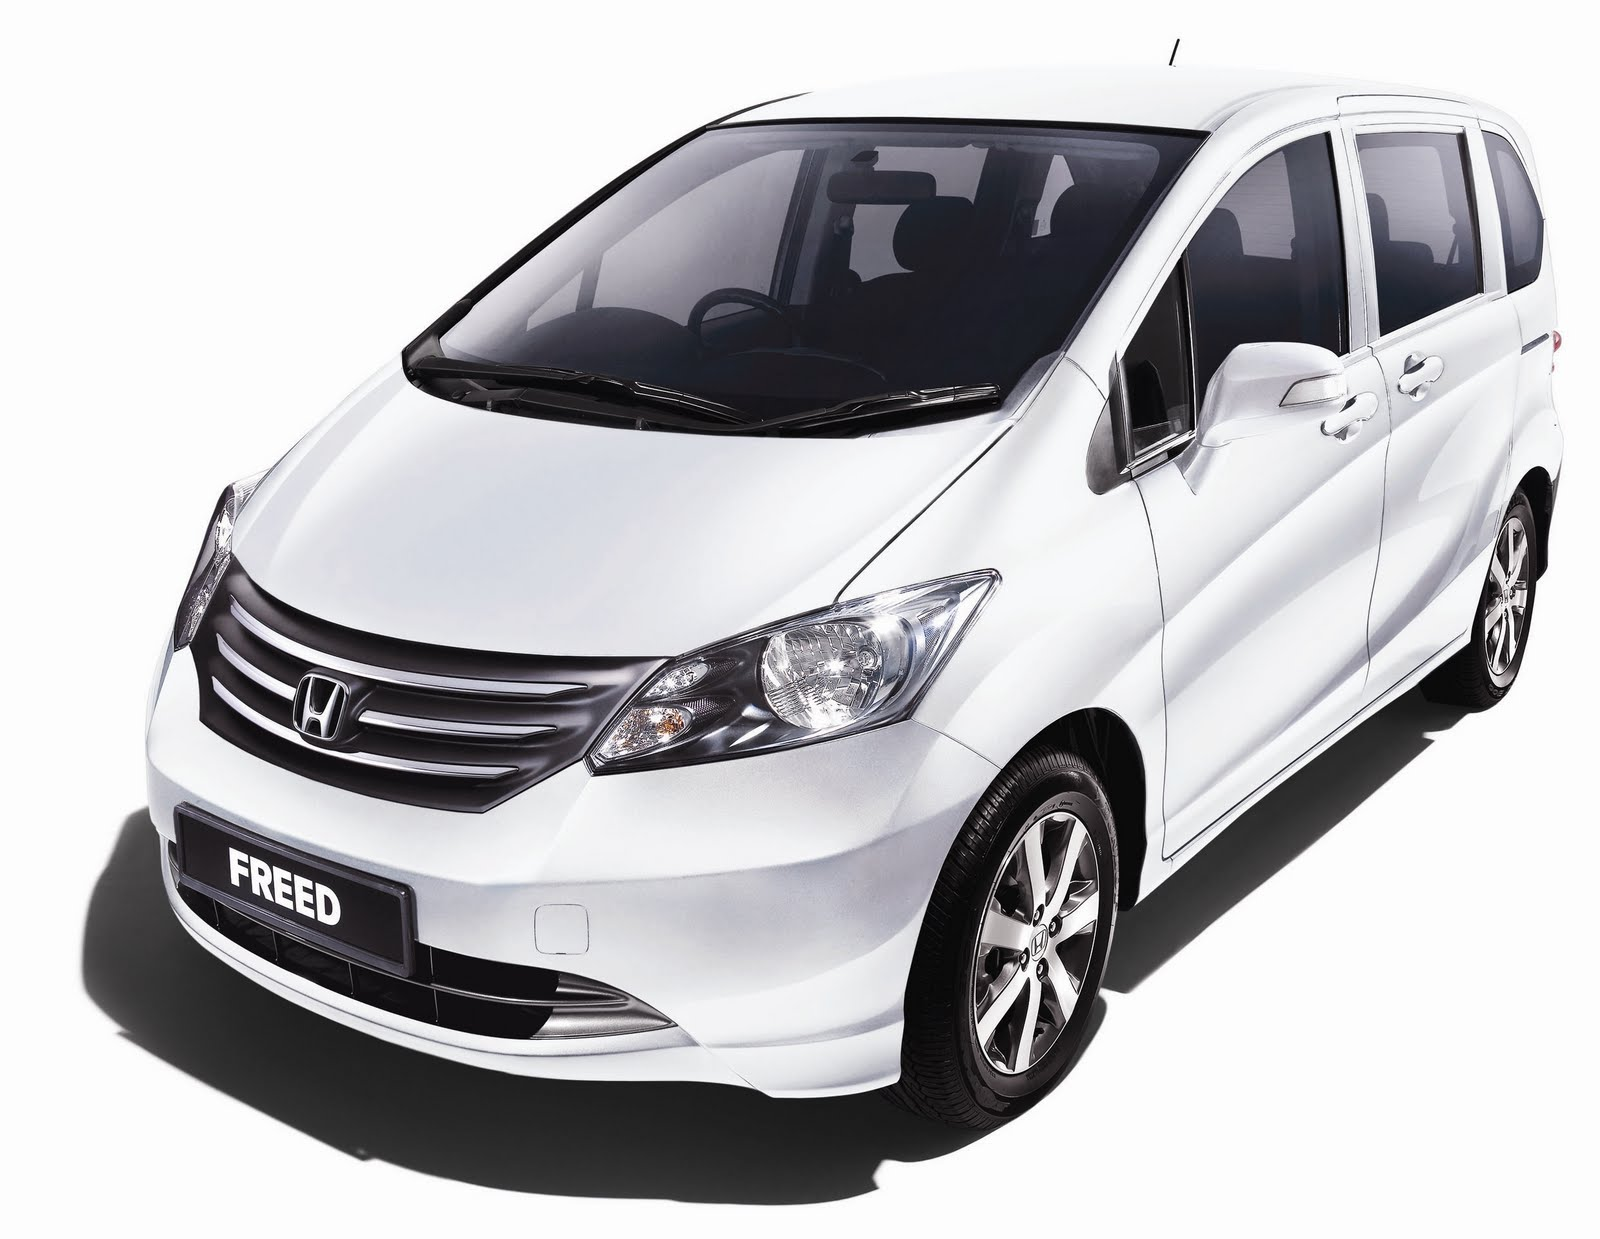 The all-new Honda Freed << AUTOCARS GARAGE